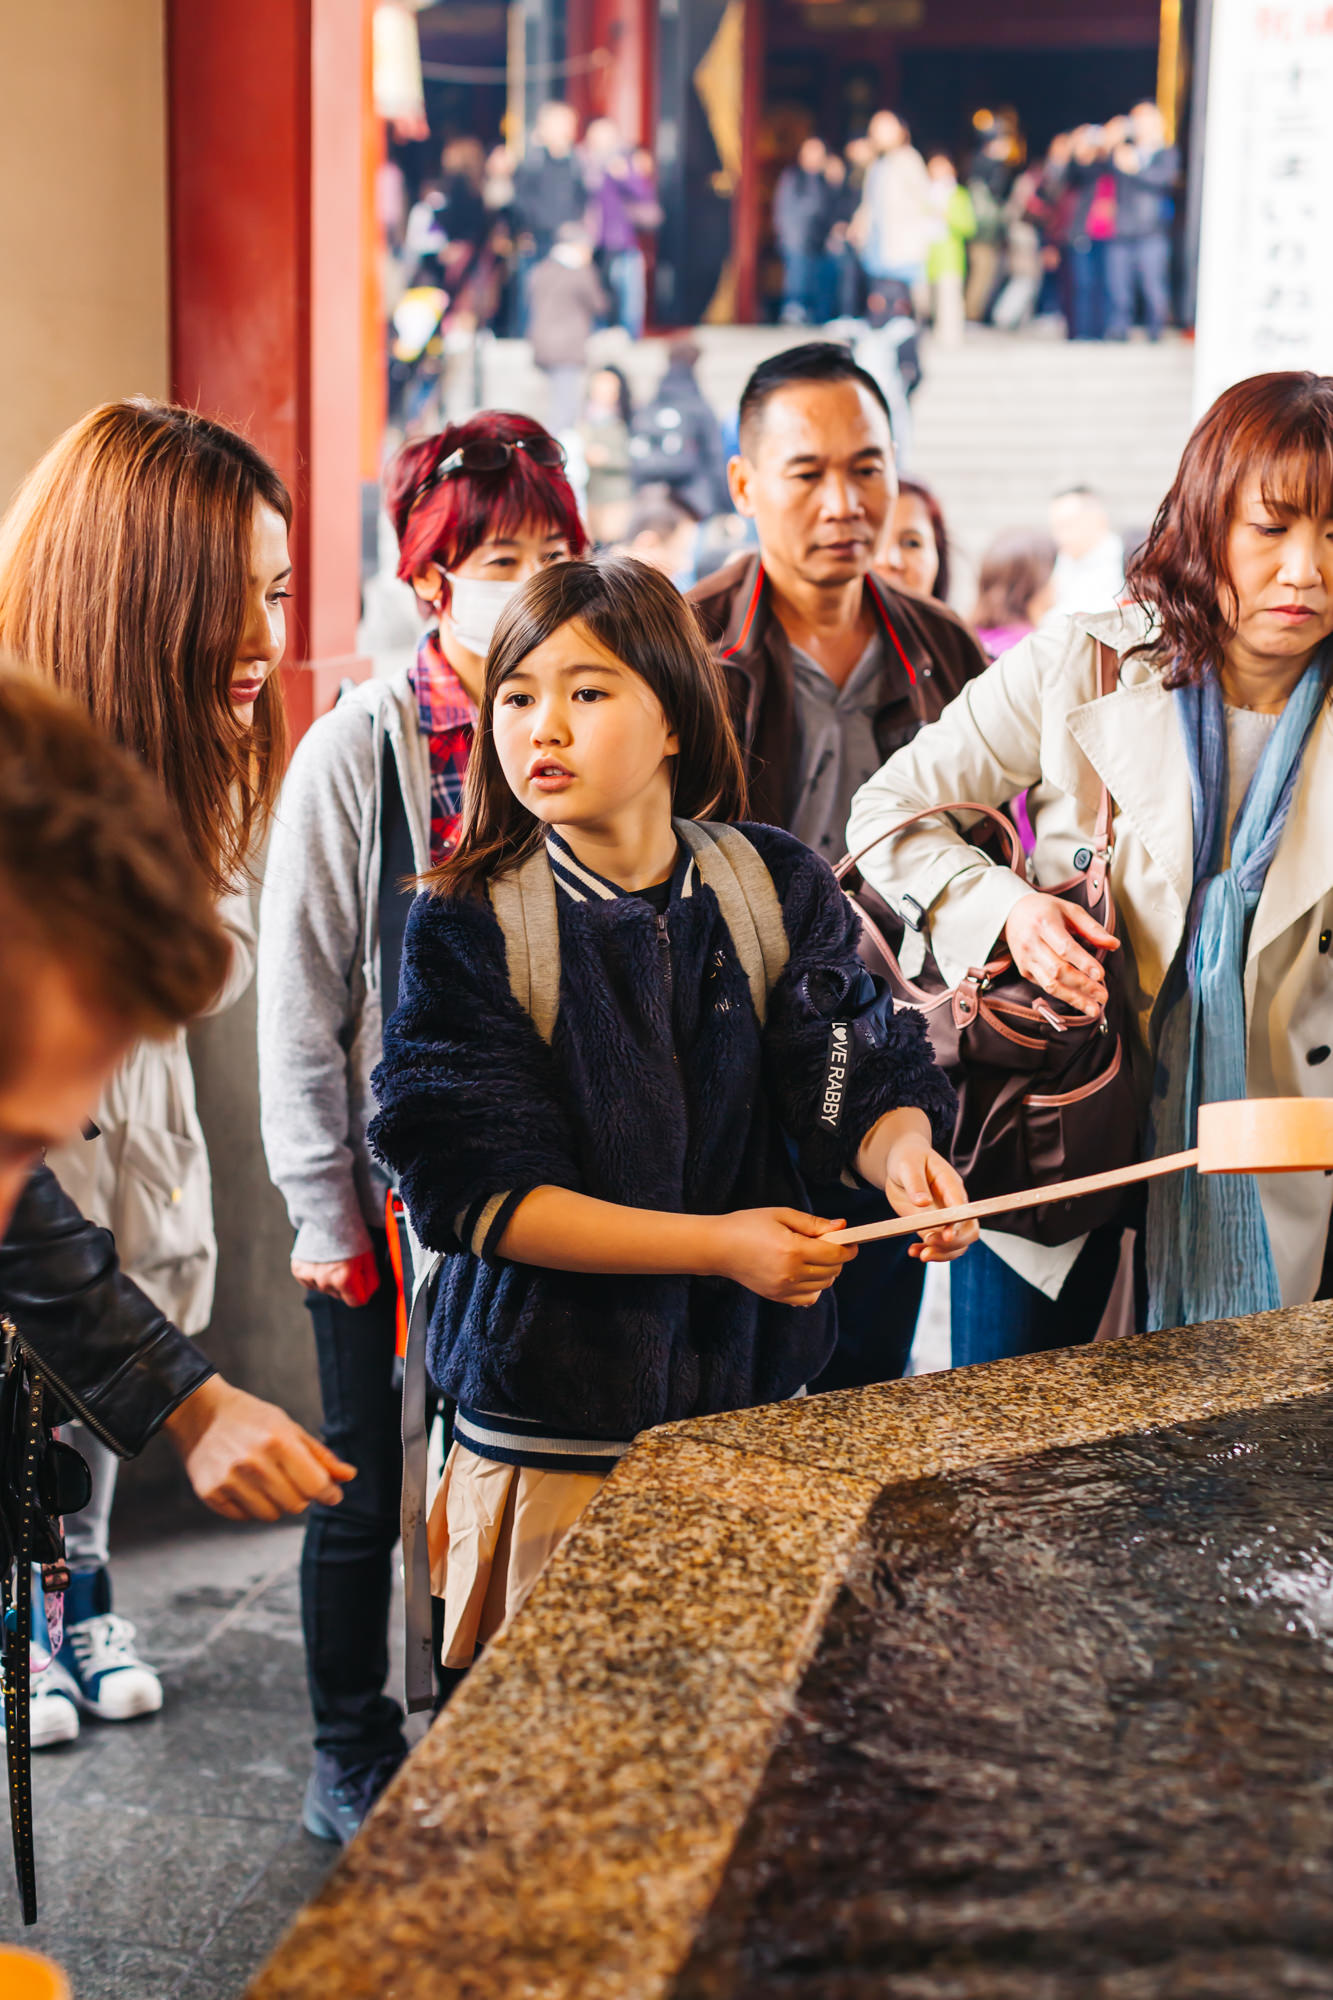 Our niece doing the purifying ritual at the Sensoji Temple